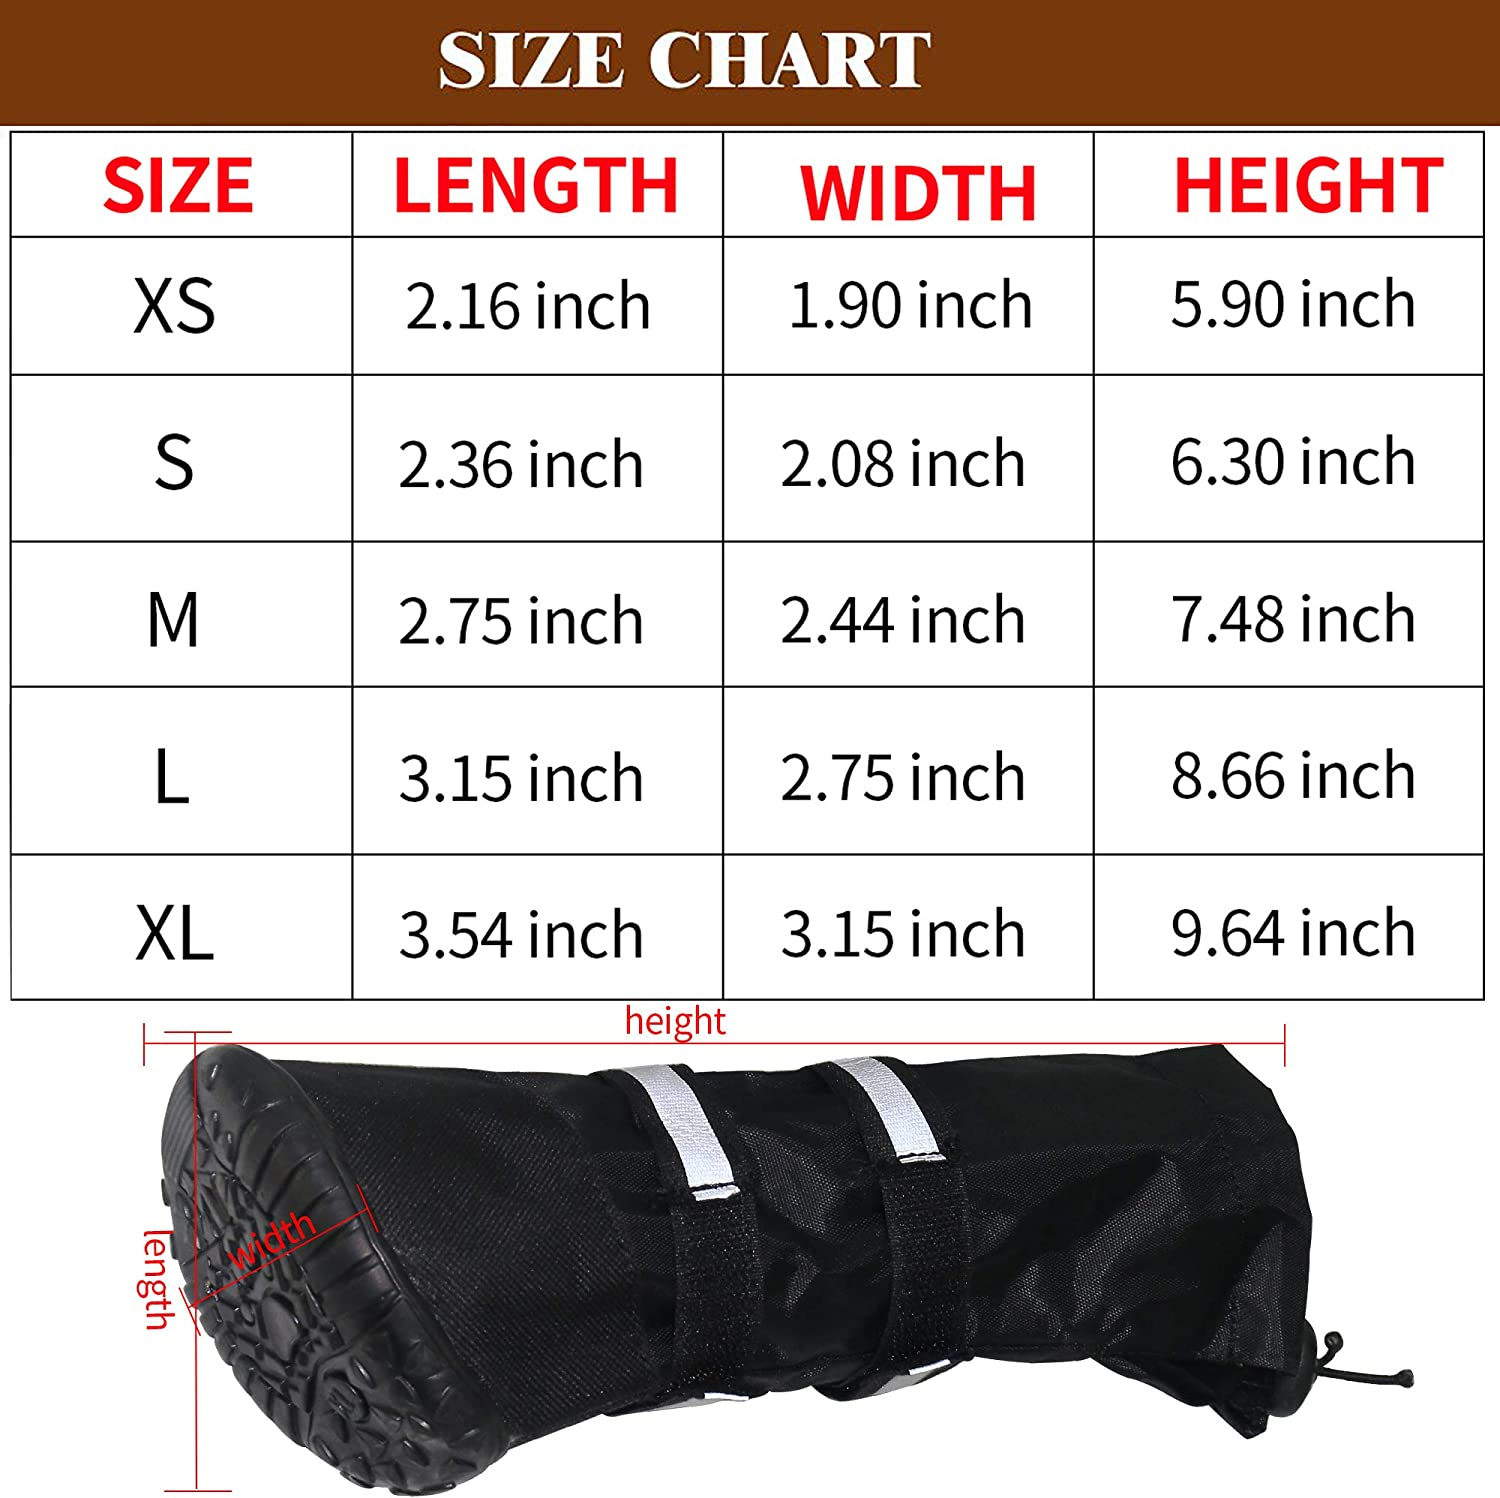 URBEST Dog Shoes Warm Lining Nonslip Rubber Sole for Snow Winter Only for Medium and Large Dogs 2 Pairs Waterproof Dog Boots S, Black